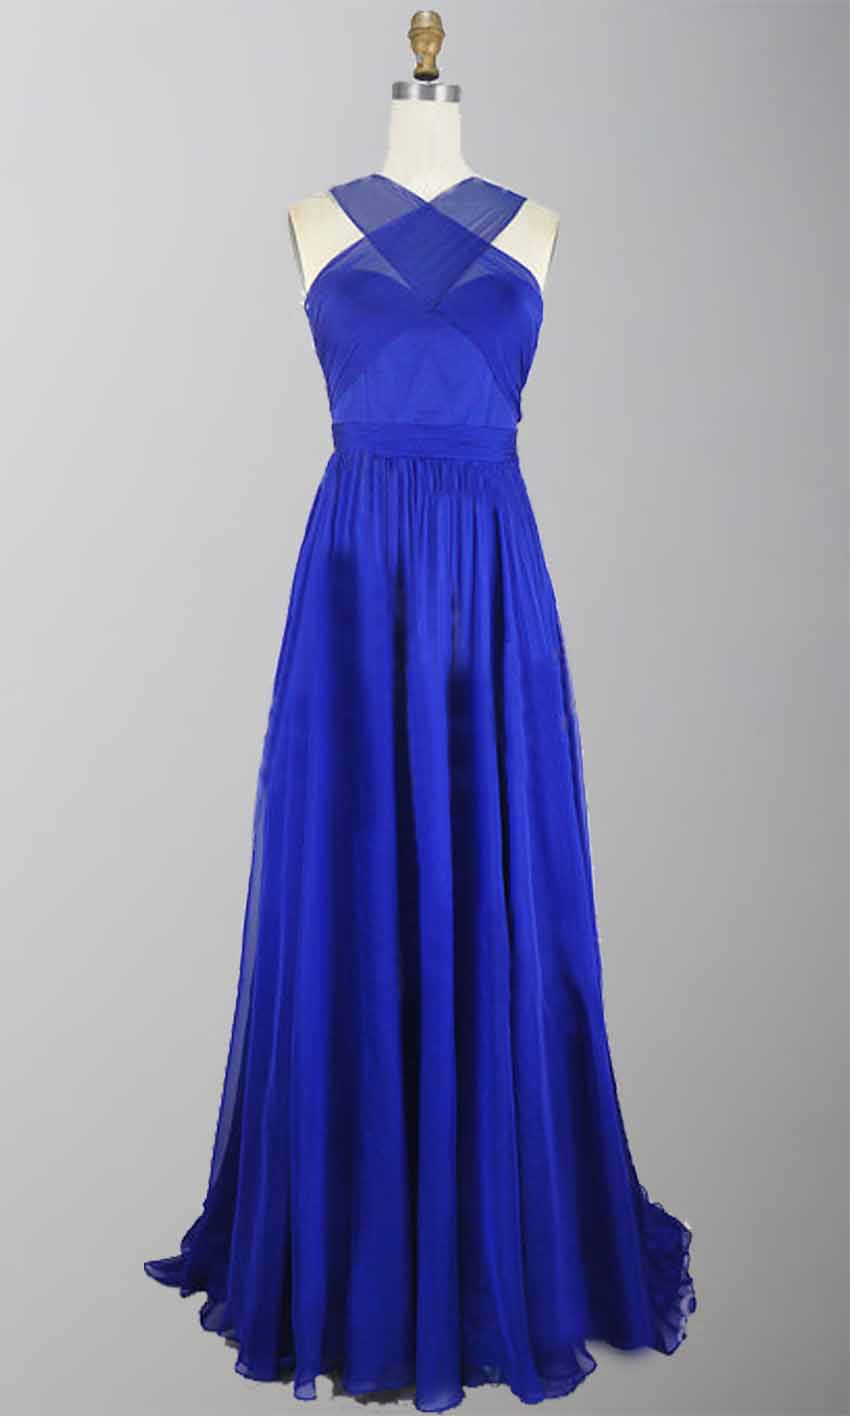 Blue Cross Strap Cut Out Back Long Prom Party Dress KSP273 [KSP273] - £90.00 : Cheap Prom Dresses Uk, Bridesmaid Dresses, 2014 Prom & Evening Dresses, Look for cheap elegant prom dresses 2014, cocktail gowns, or dresses for special occasions? kissprom.co.uk offers various bridesmaid dresses, evening dress, free shipping to UK etc.